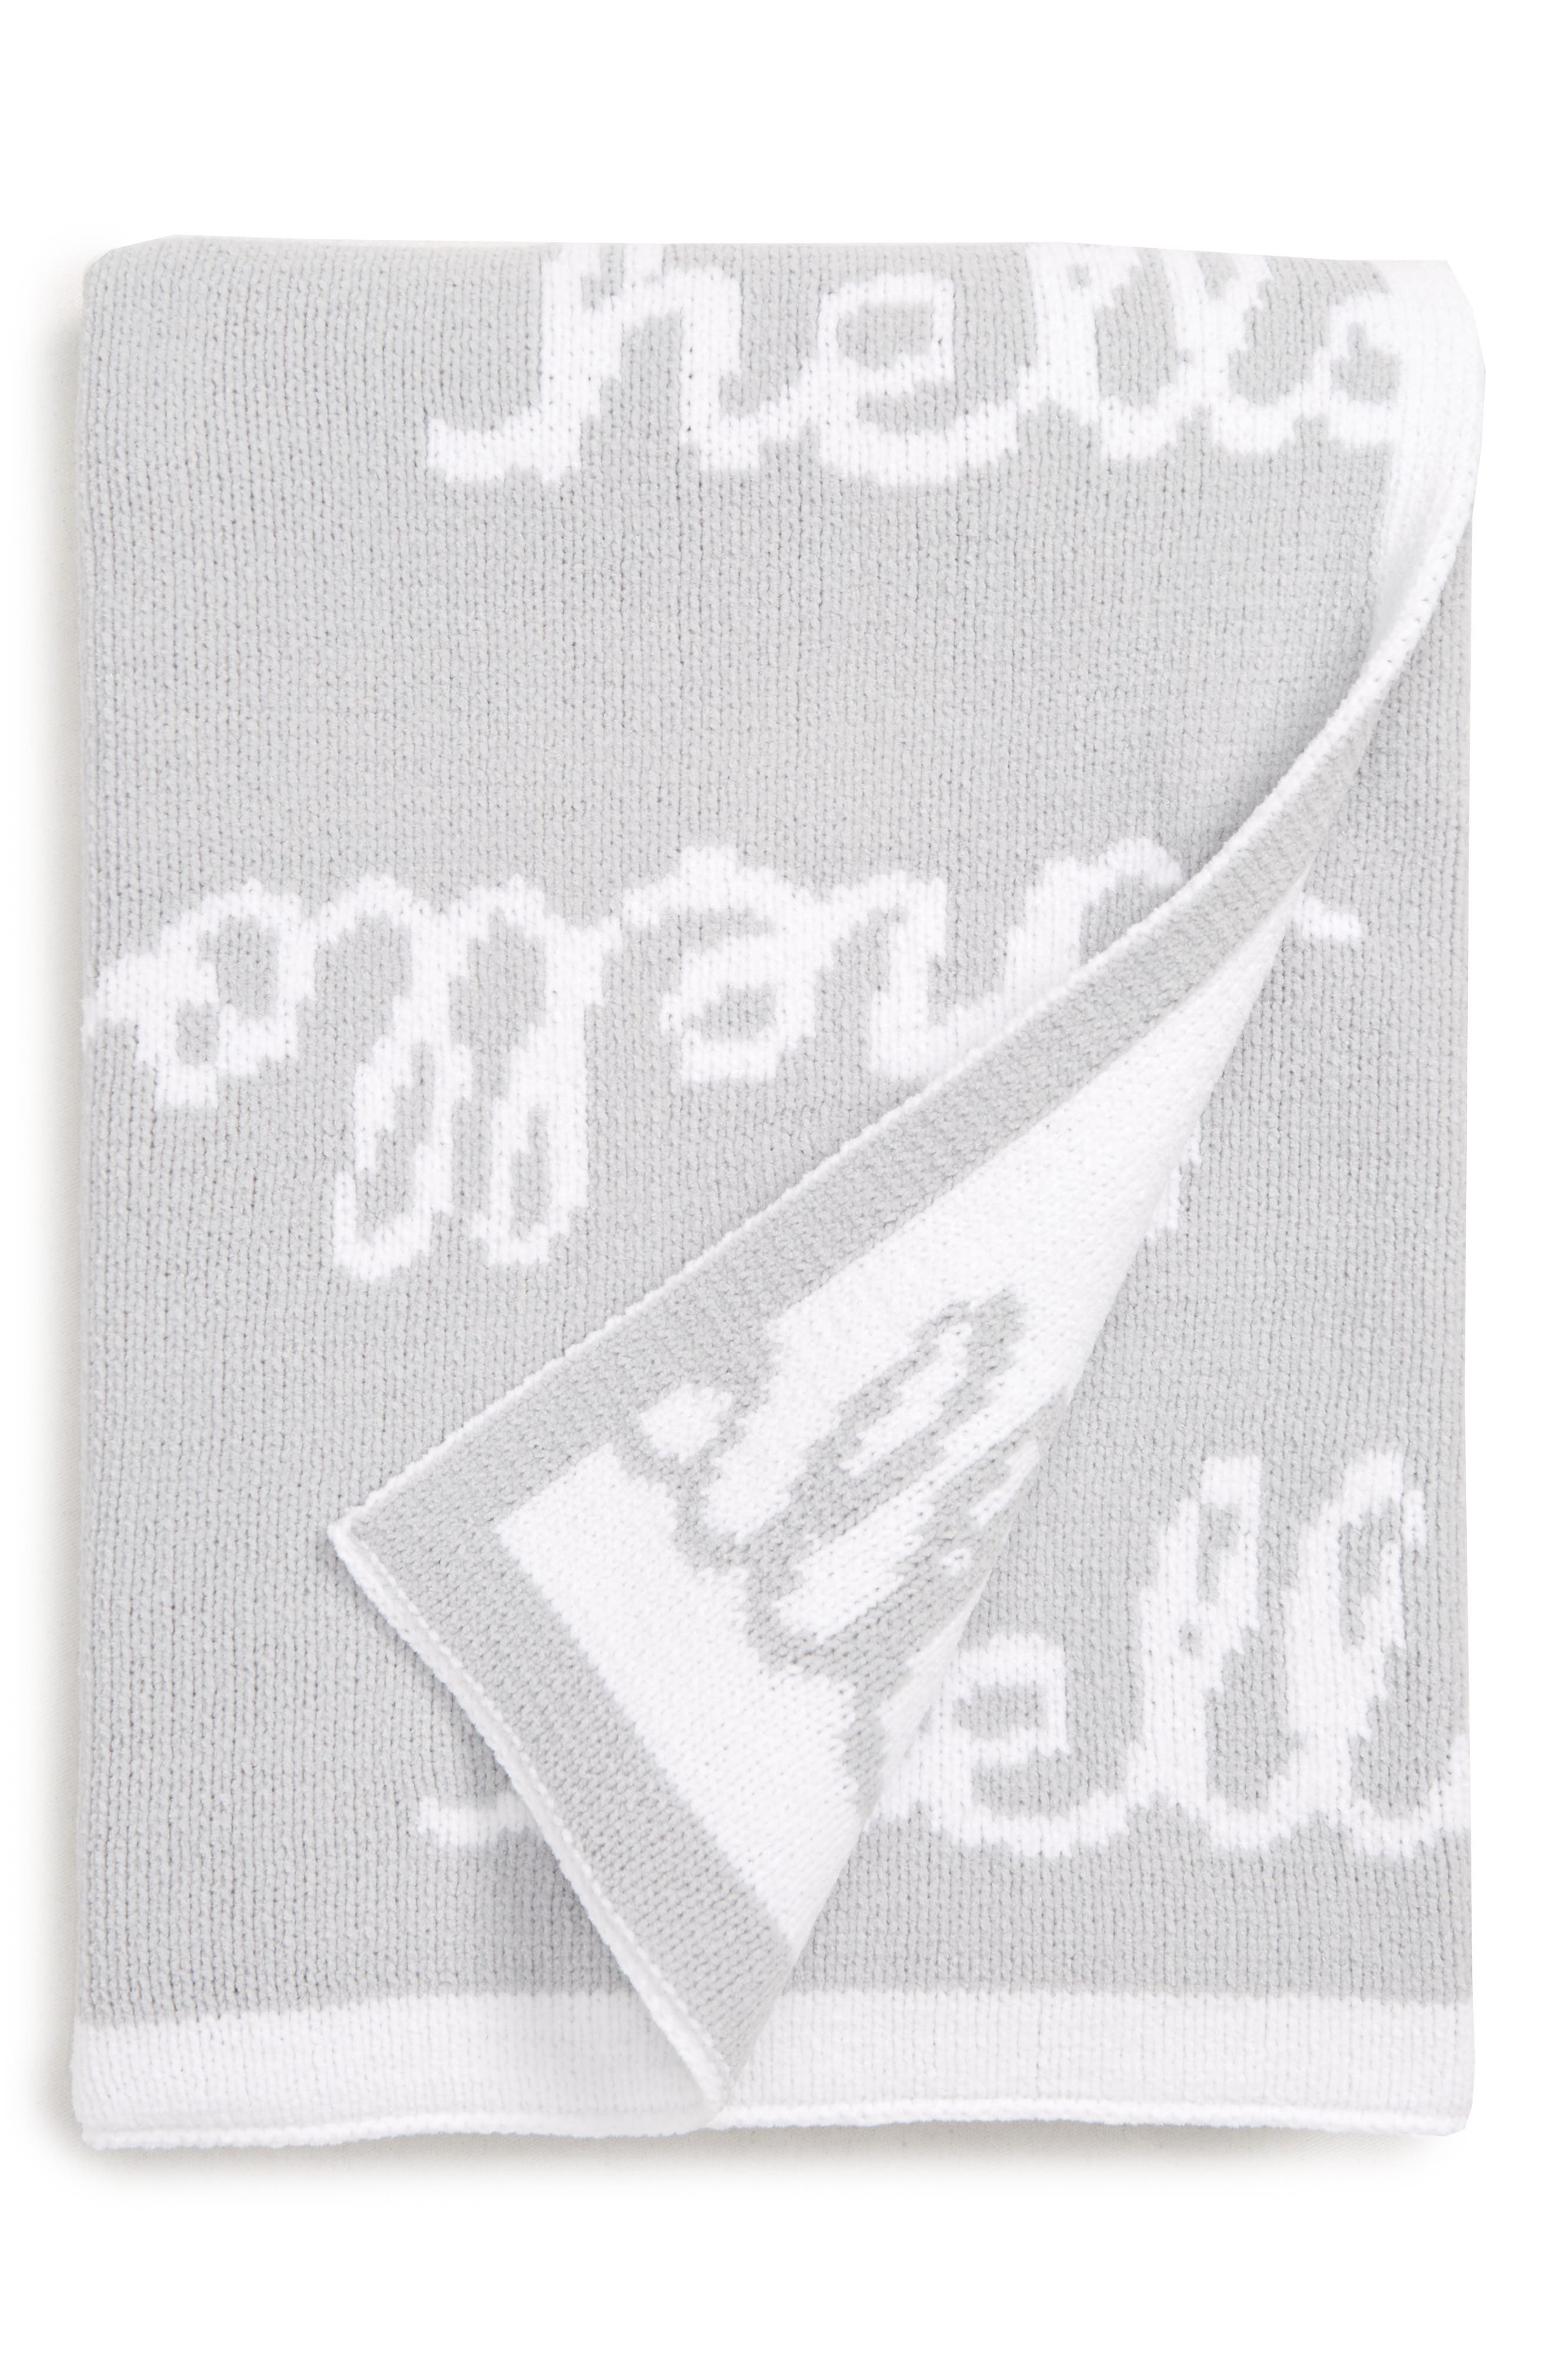 NORDSTROM BABY, Chenille Blanket, Main thumbnail 1, color, GREY MICRO HELLO BABY